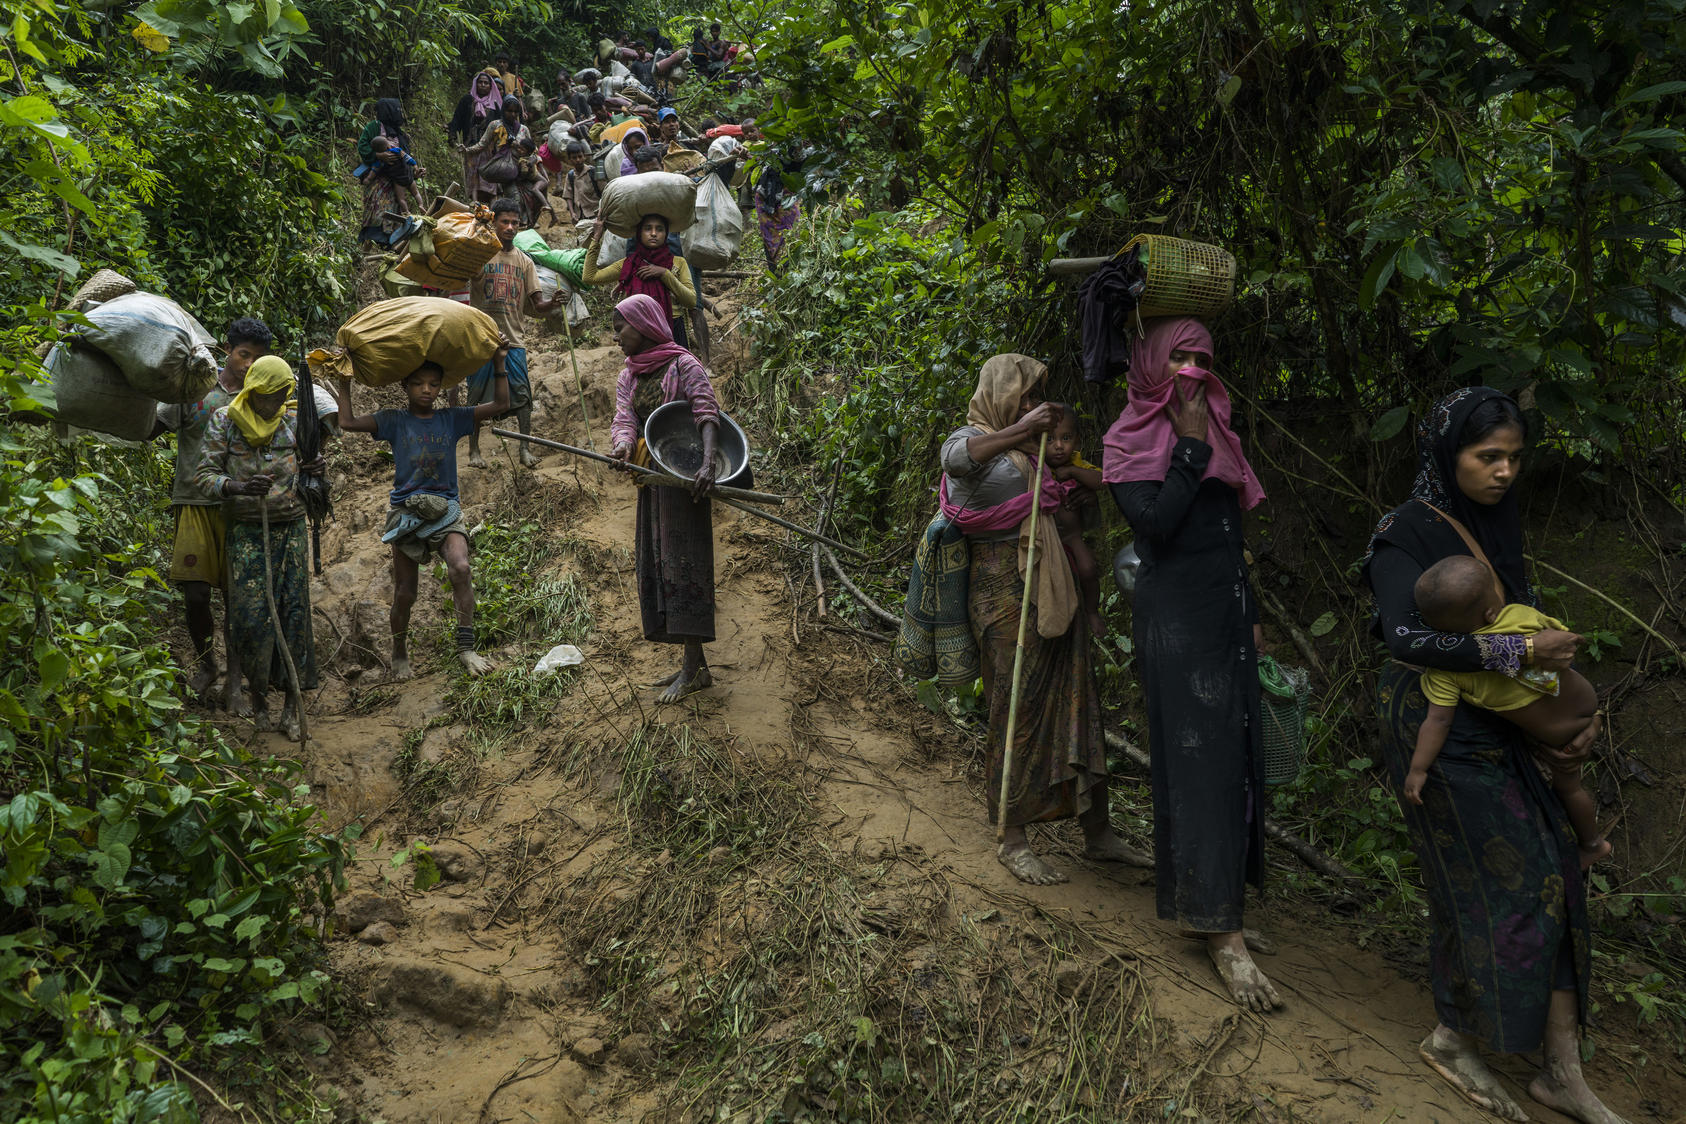 Rohingya refugees from Myanmar after crossing the border illegally near Amtoli, Bangladesh, Sept. 1, 2017. Photo Courtesy of The New York Times/Adam Dean